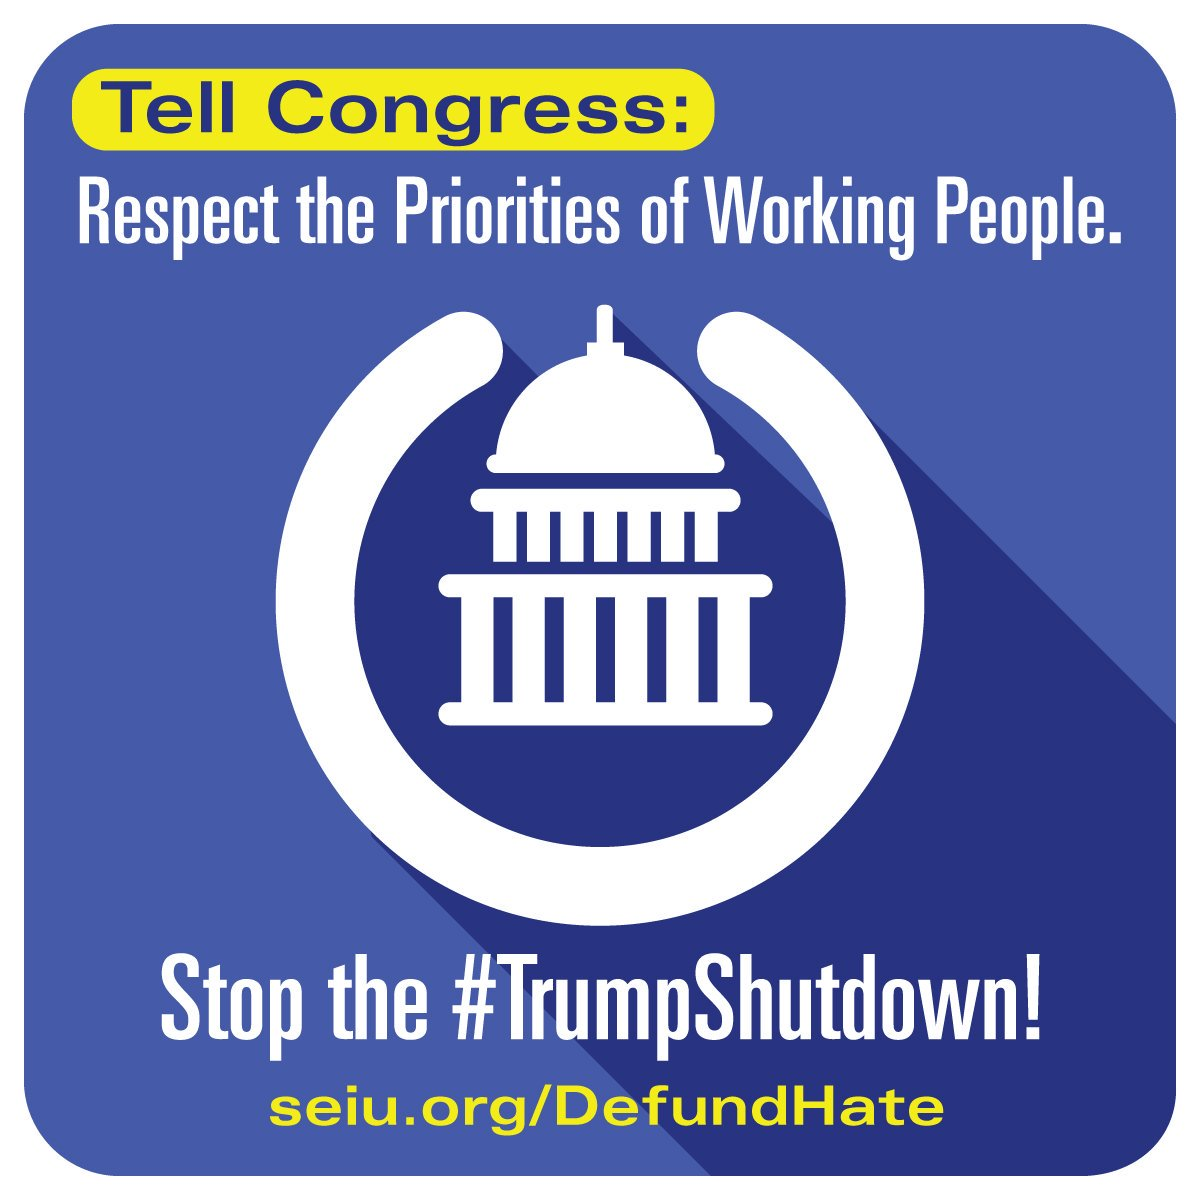 """President Trump and his Republican Congressional allies have time after time attempted to divide us by demanding billions for a border wall, while giving huge tax breaks to corporate CEOs and billionaires. Tell them """"we want good jobs; not walls.""""   https://t.co/bEqUmcBGYg"""